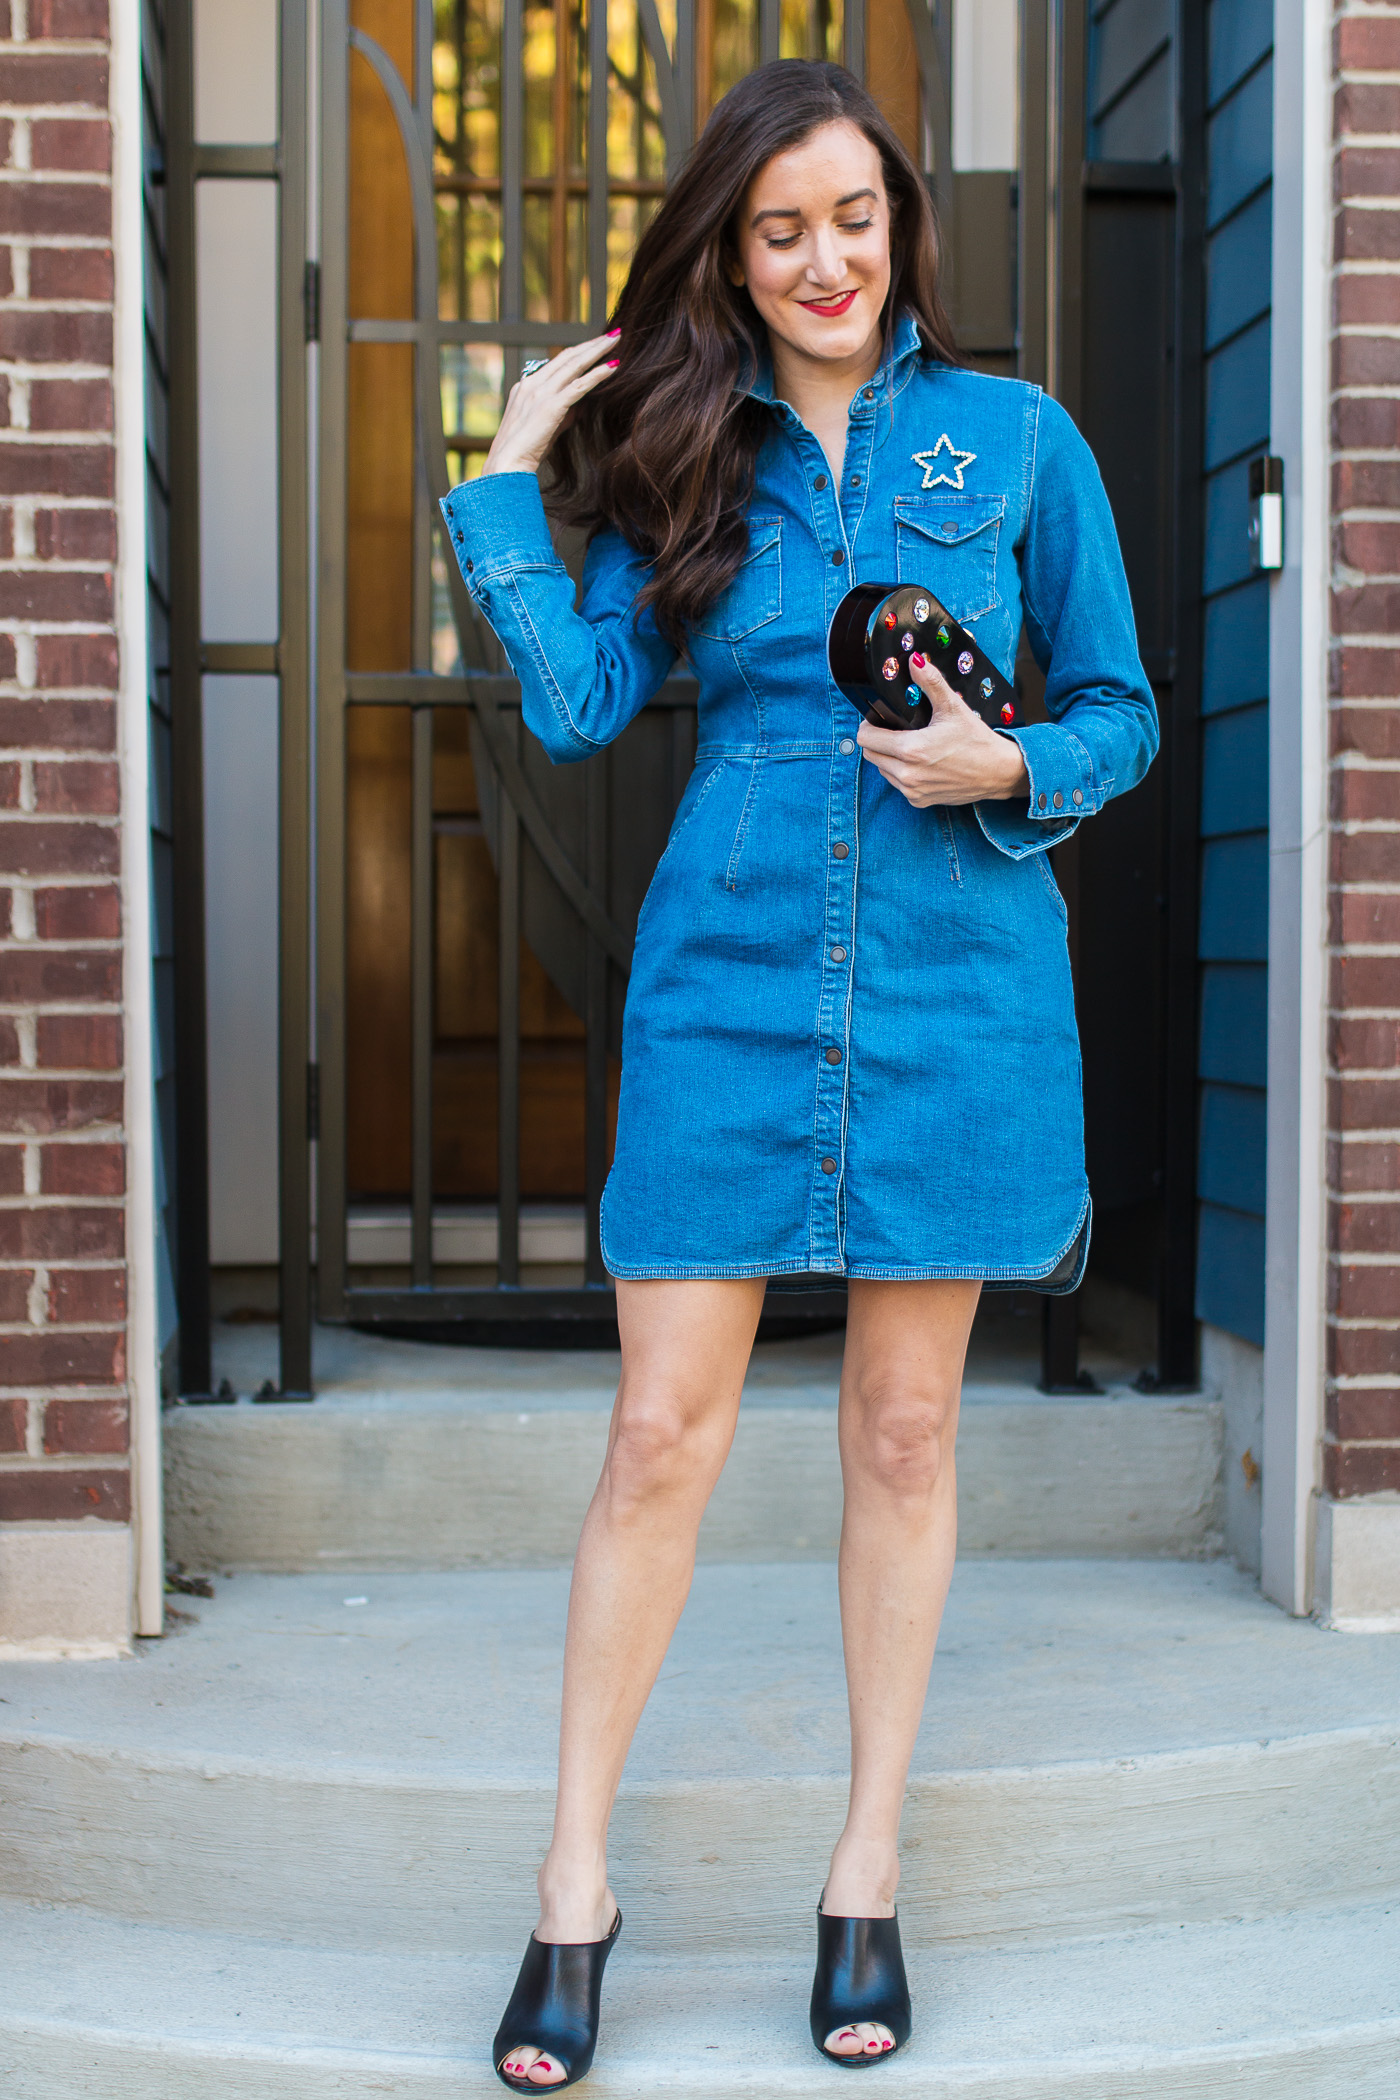 How to Wear a Denim Dress